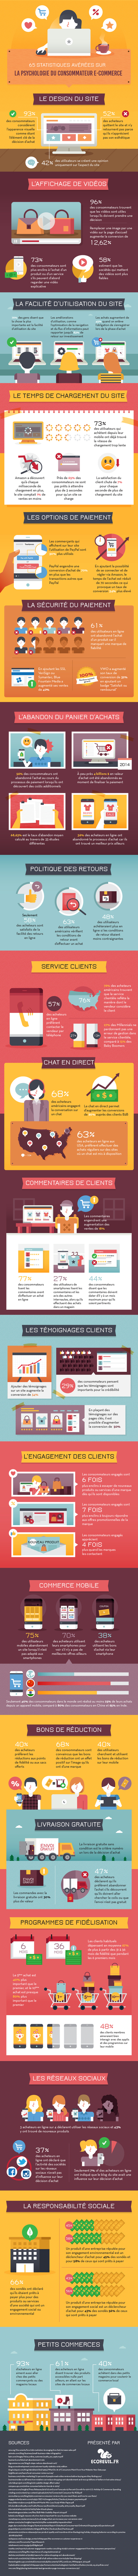 65 faits sur la psychologie du consommateur en E-commerce | Digital inspirations | Scoop.it